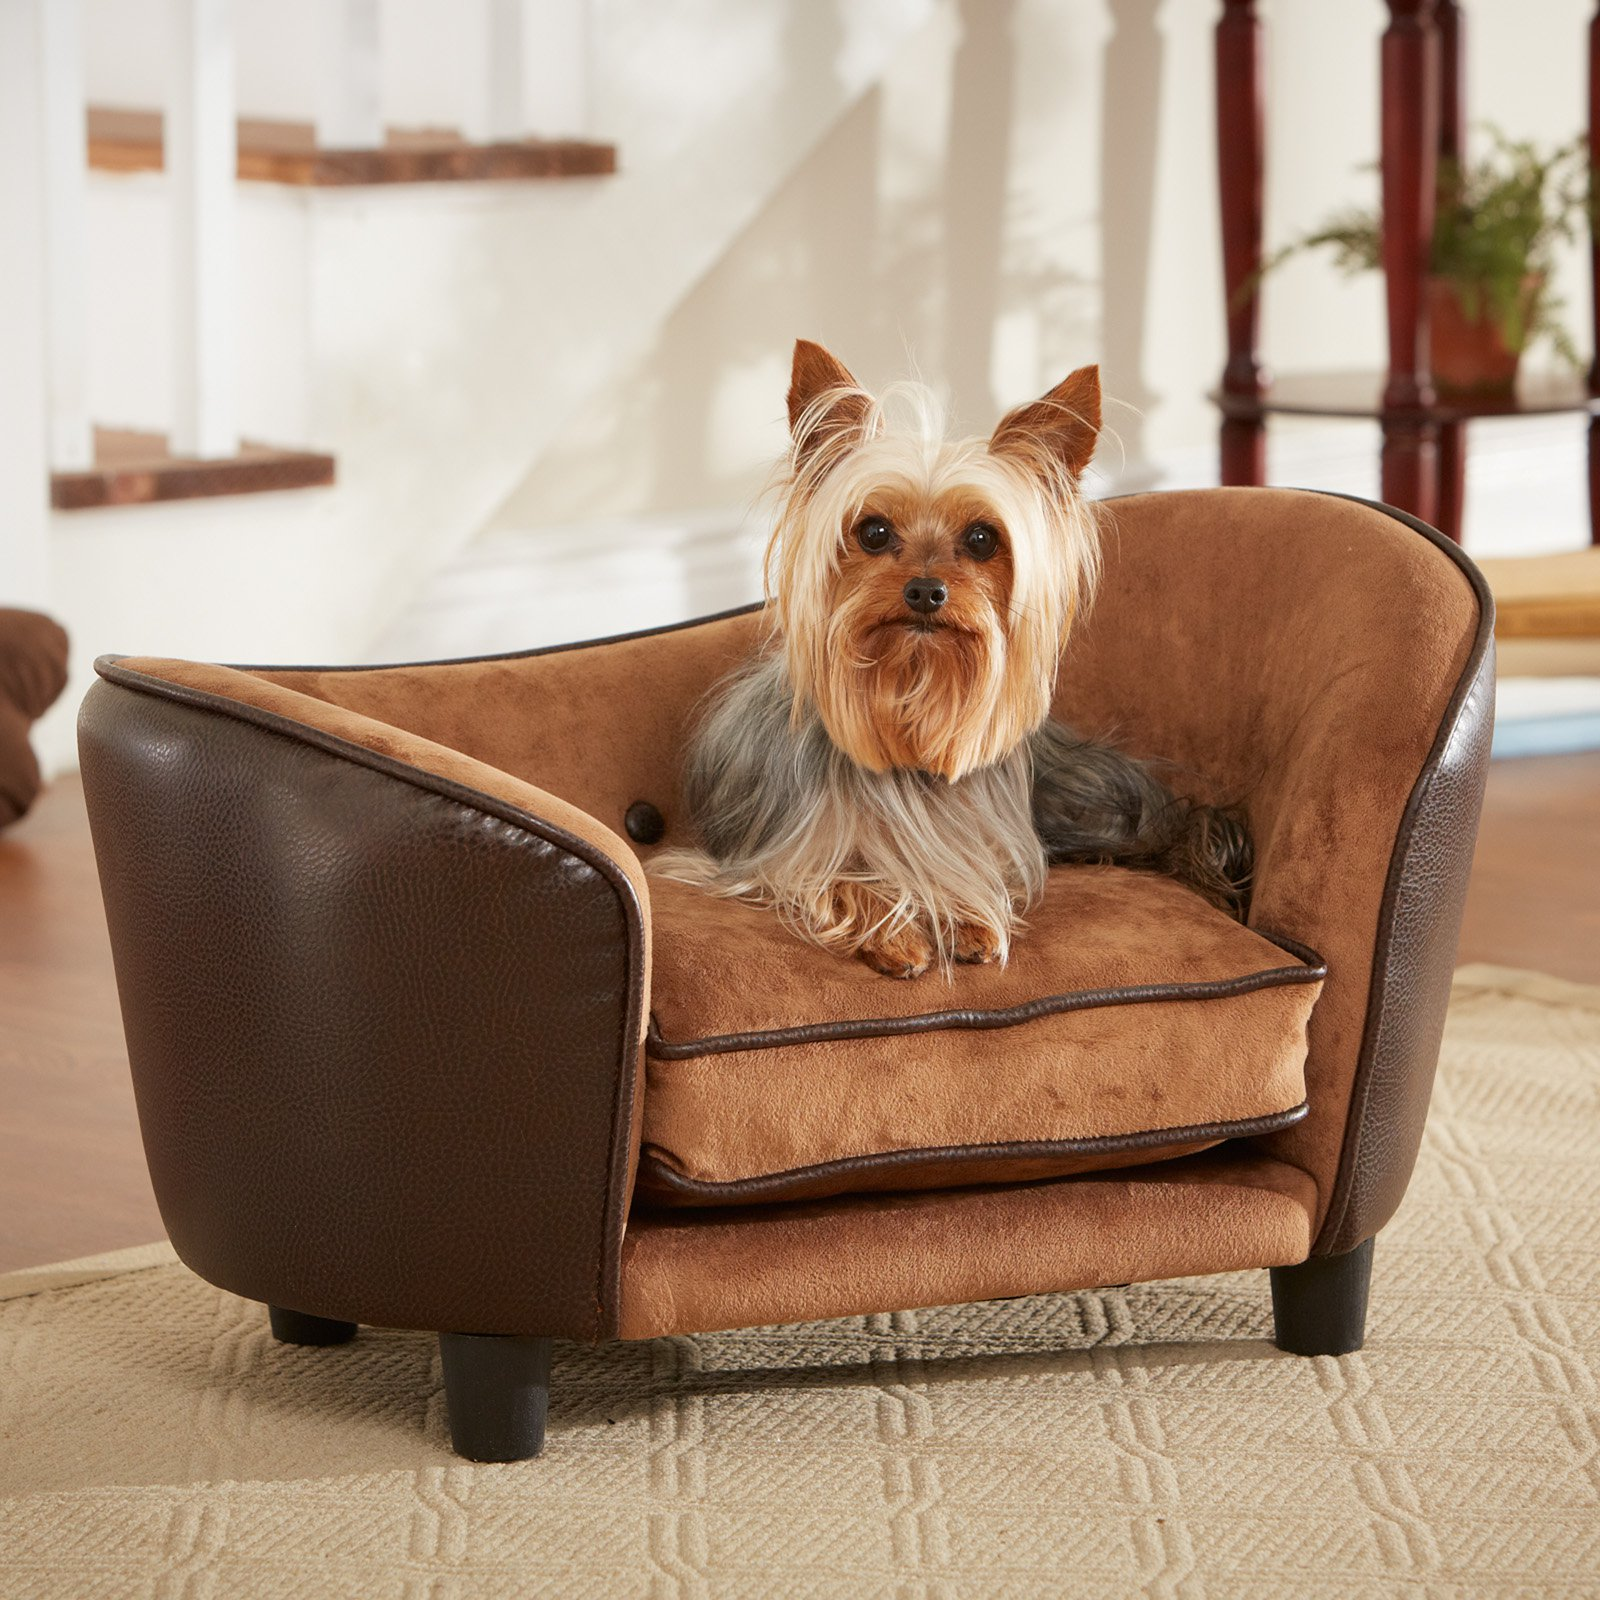 Enchanted Home Pet Ultra Plush Snuggle Bed - Pebble Brown